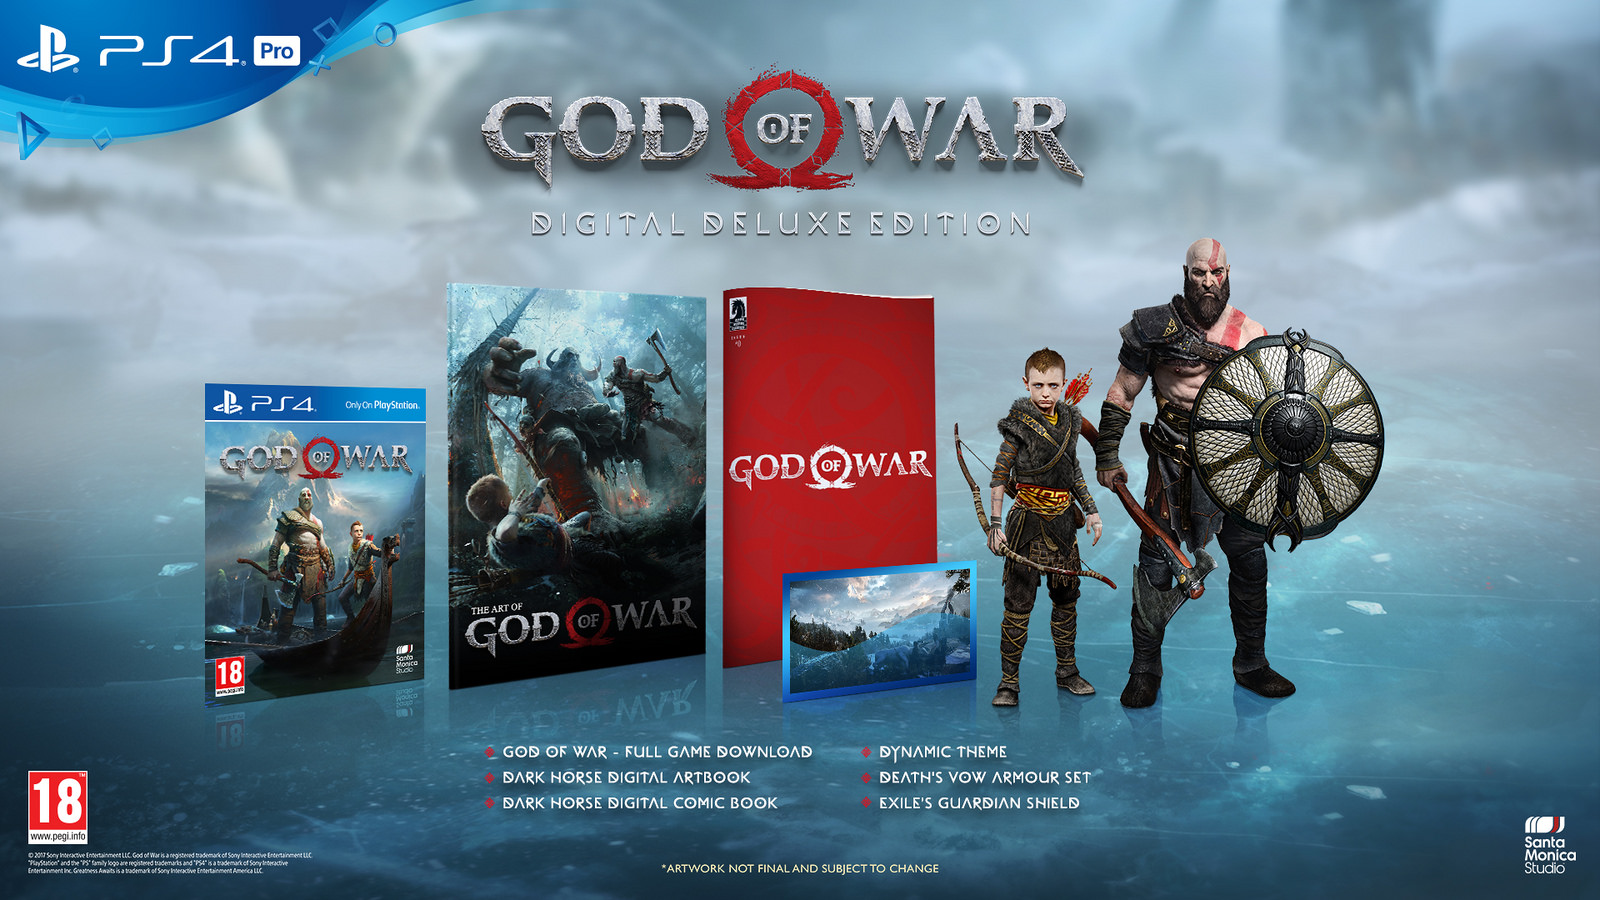 God of War Release Date Confirmed